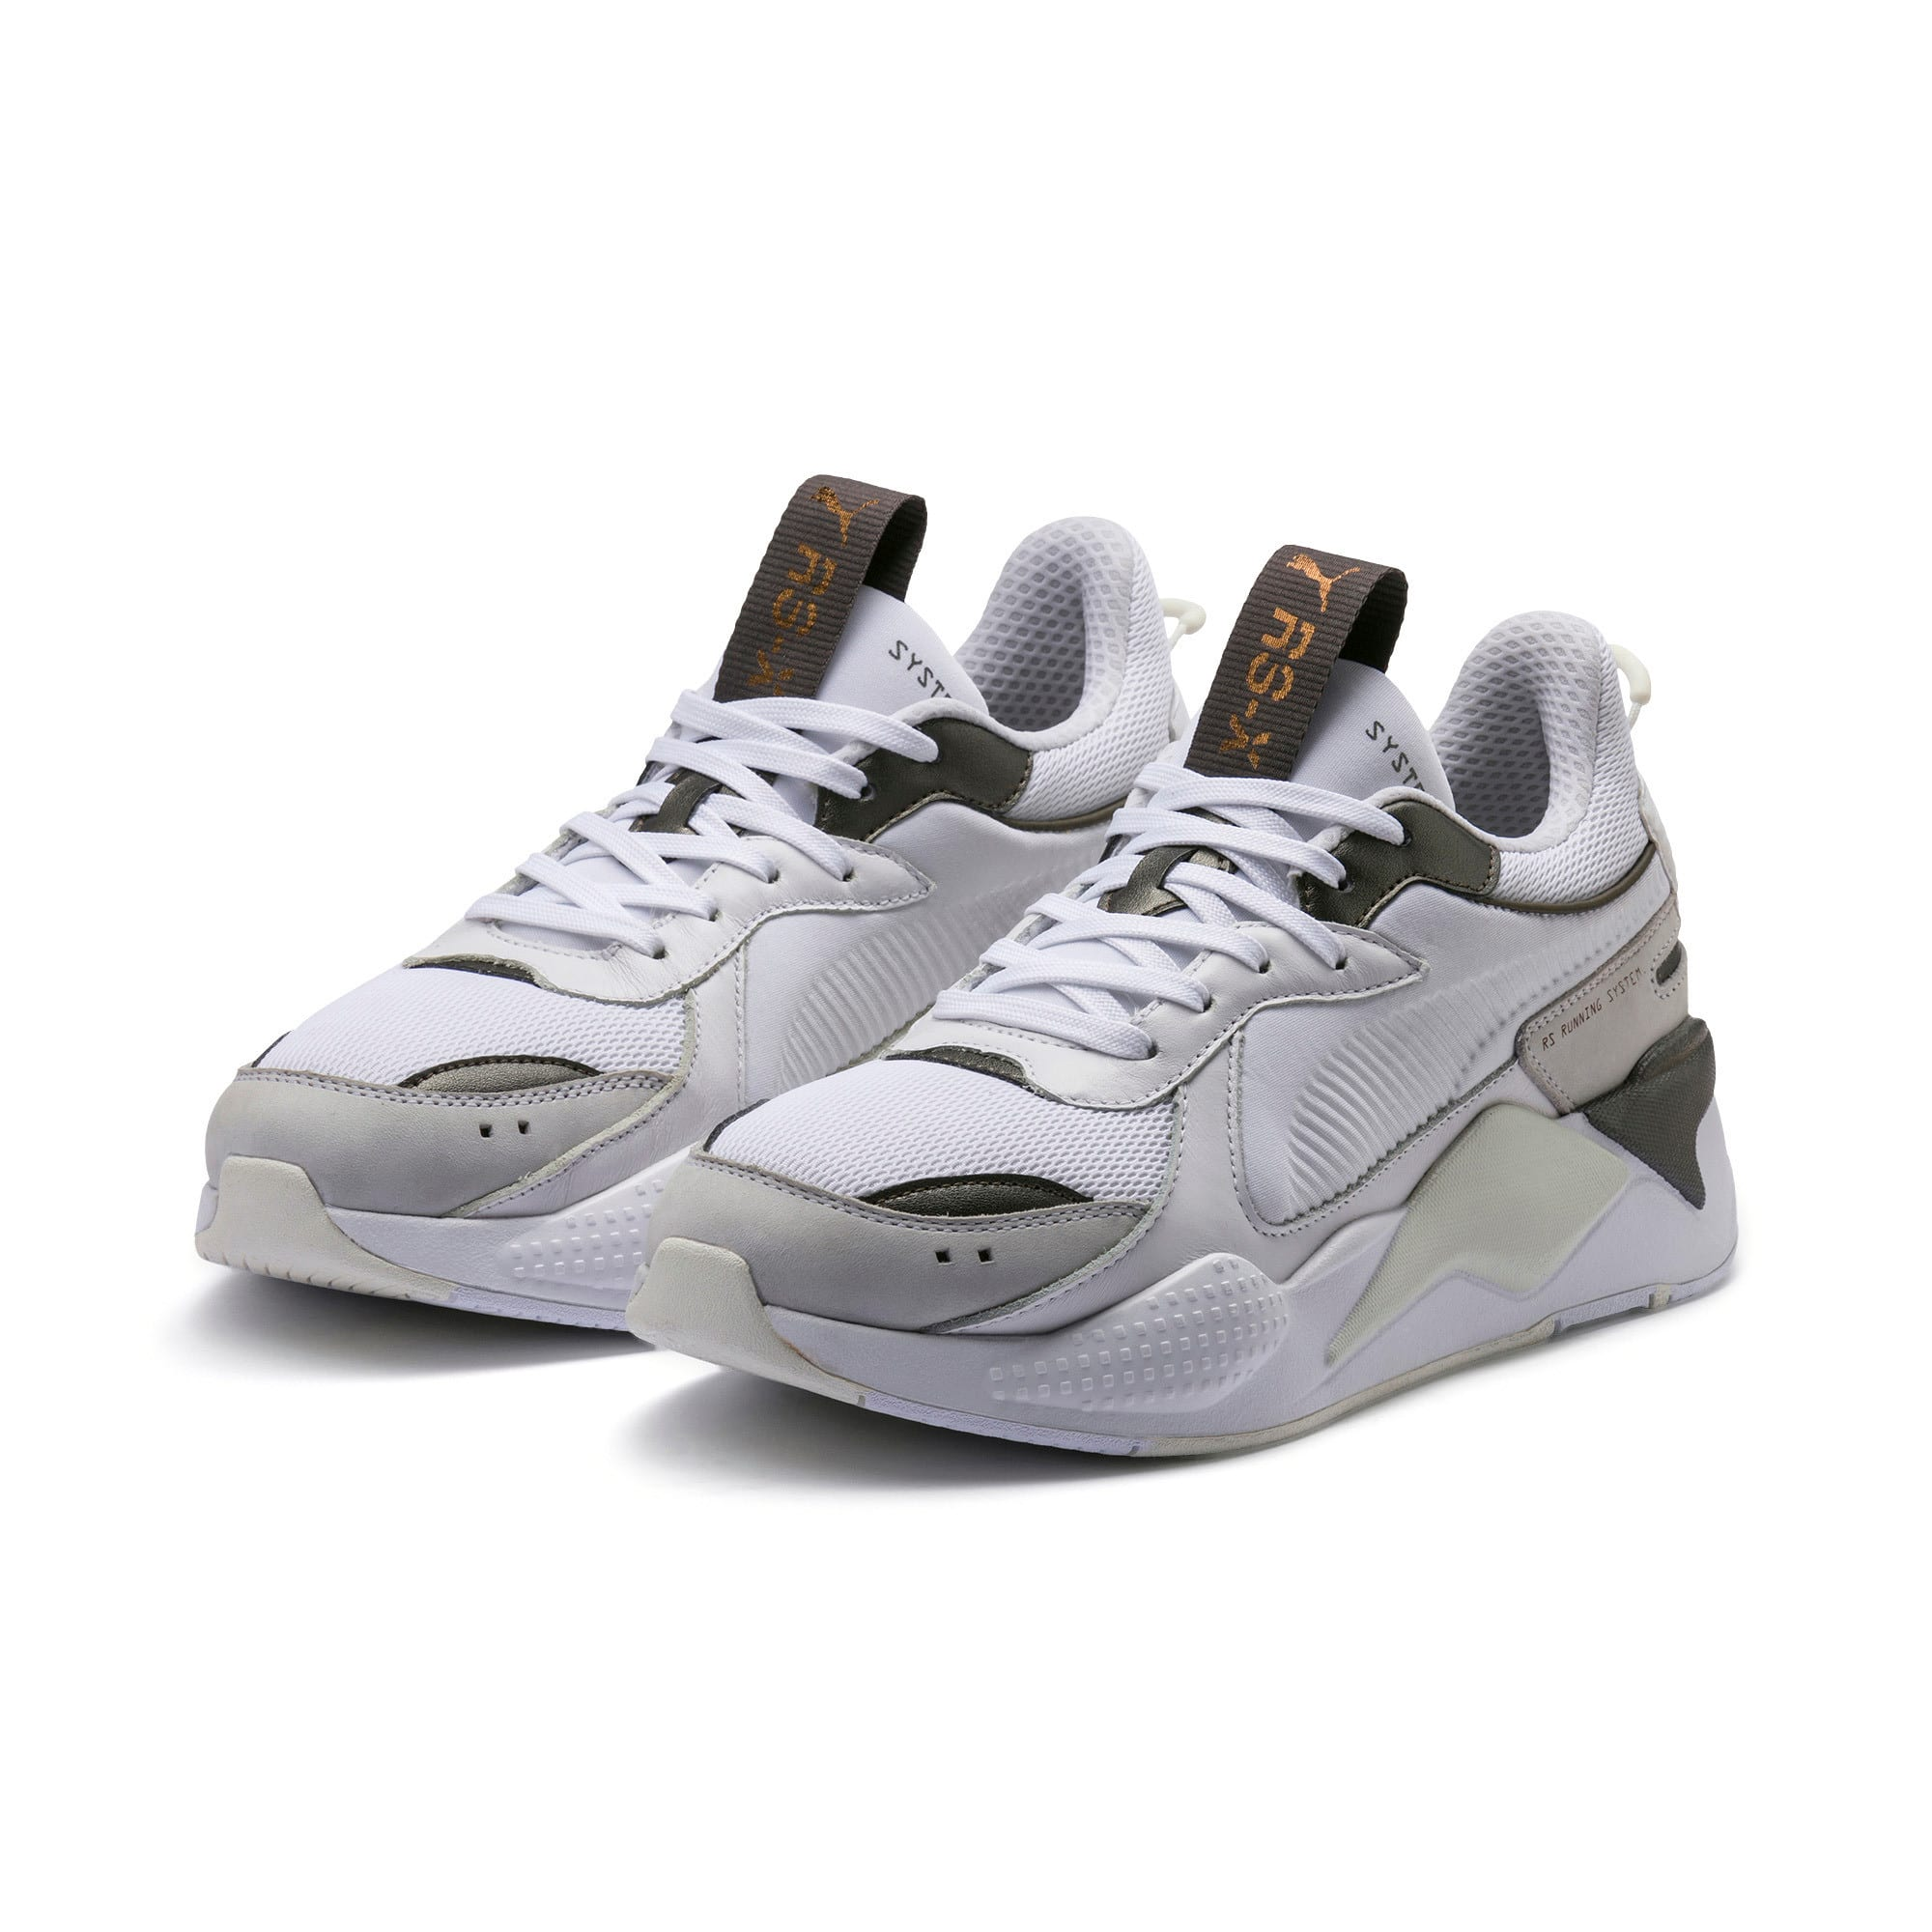 Thumbnail 3 of RS-X TROPHY, Puma White-Bronze, medium-JPN